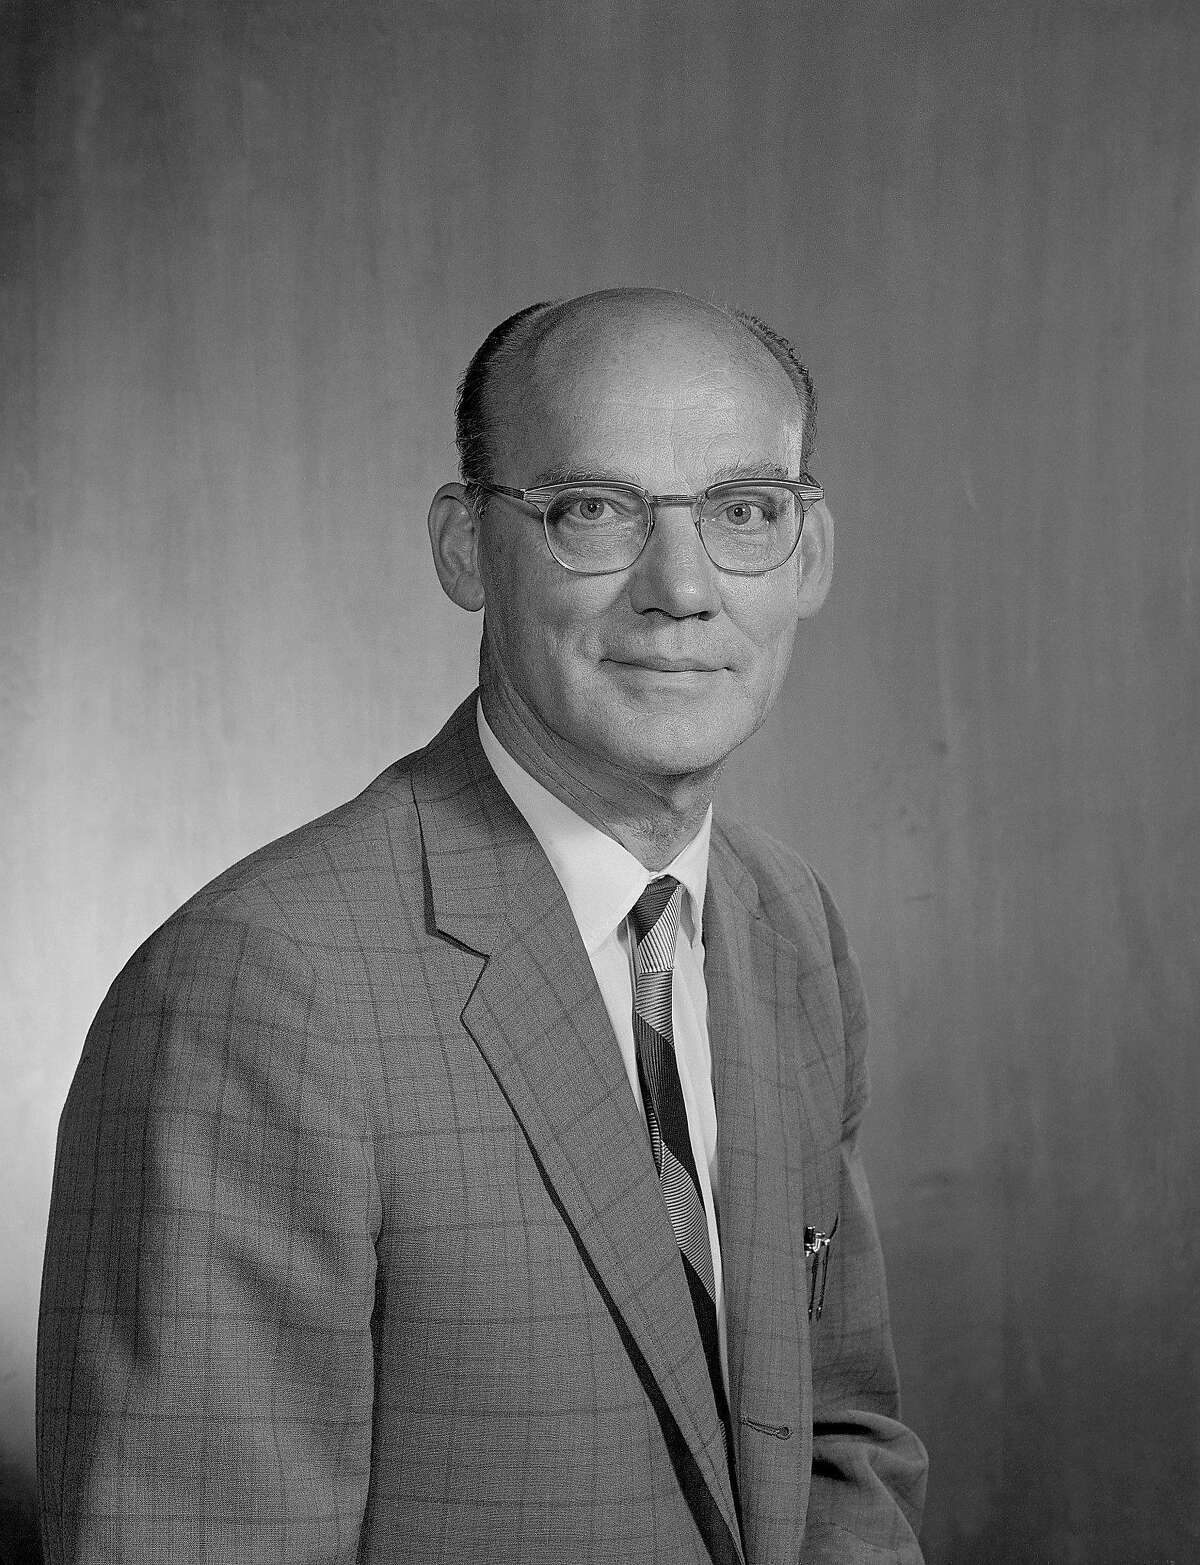 This undated photo released by the Lawrence Berkeley National Laboratory shows Edward Joseph Lofgren, a pioneering physicist at the Lawrence Berkeley National Laboratory. Lofgren, who led the development, construction and operation of the Bevatron, an early particle accelerator at the lab, died on Sept. 6, 2016. He was 102. (Lawrence Berkeley National Laboratory via AP)